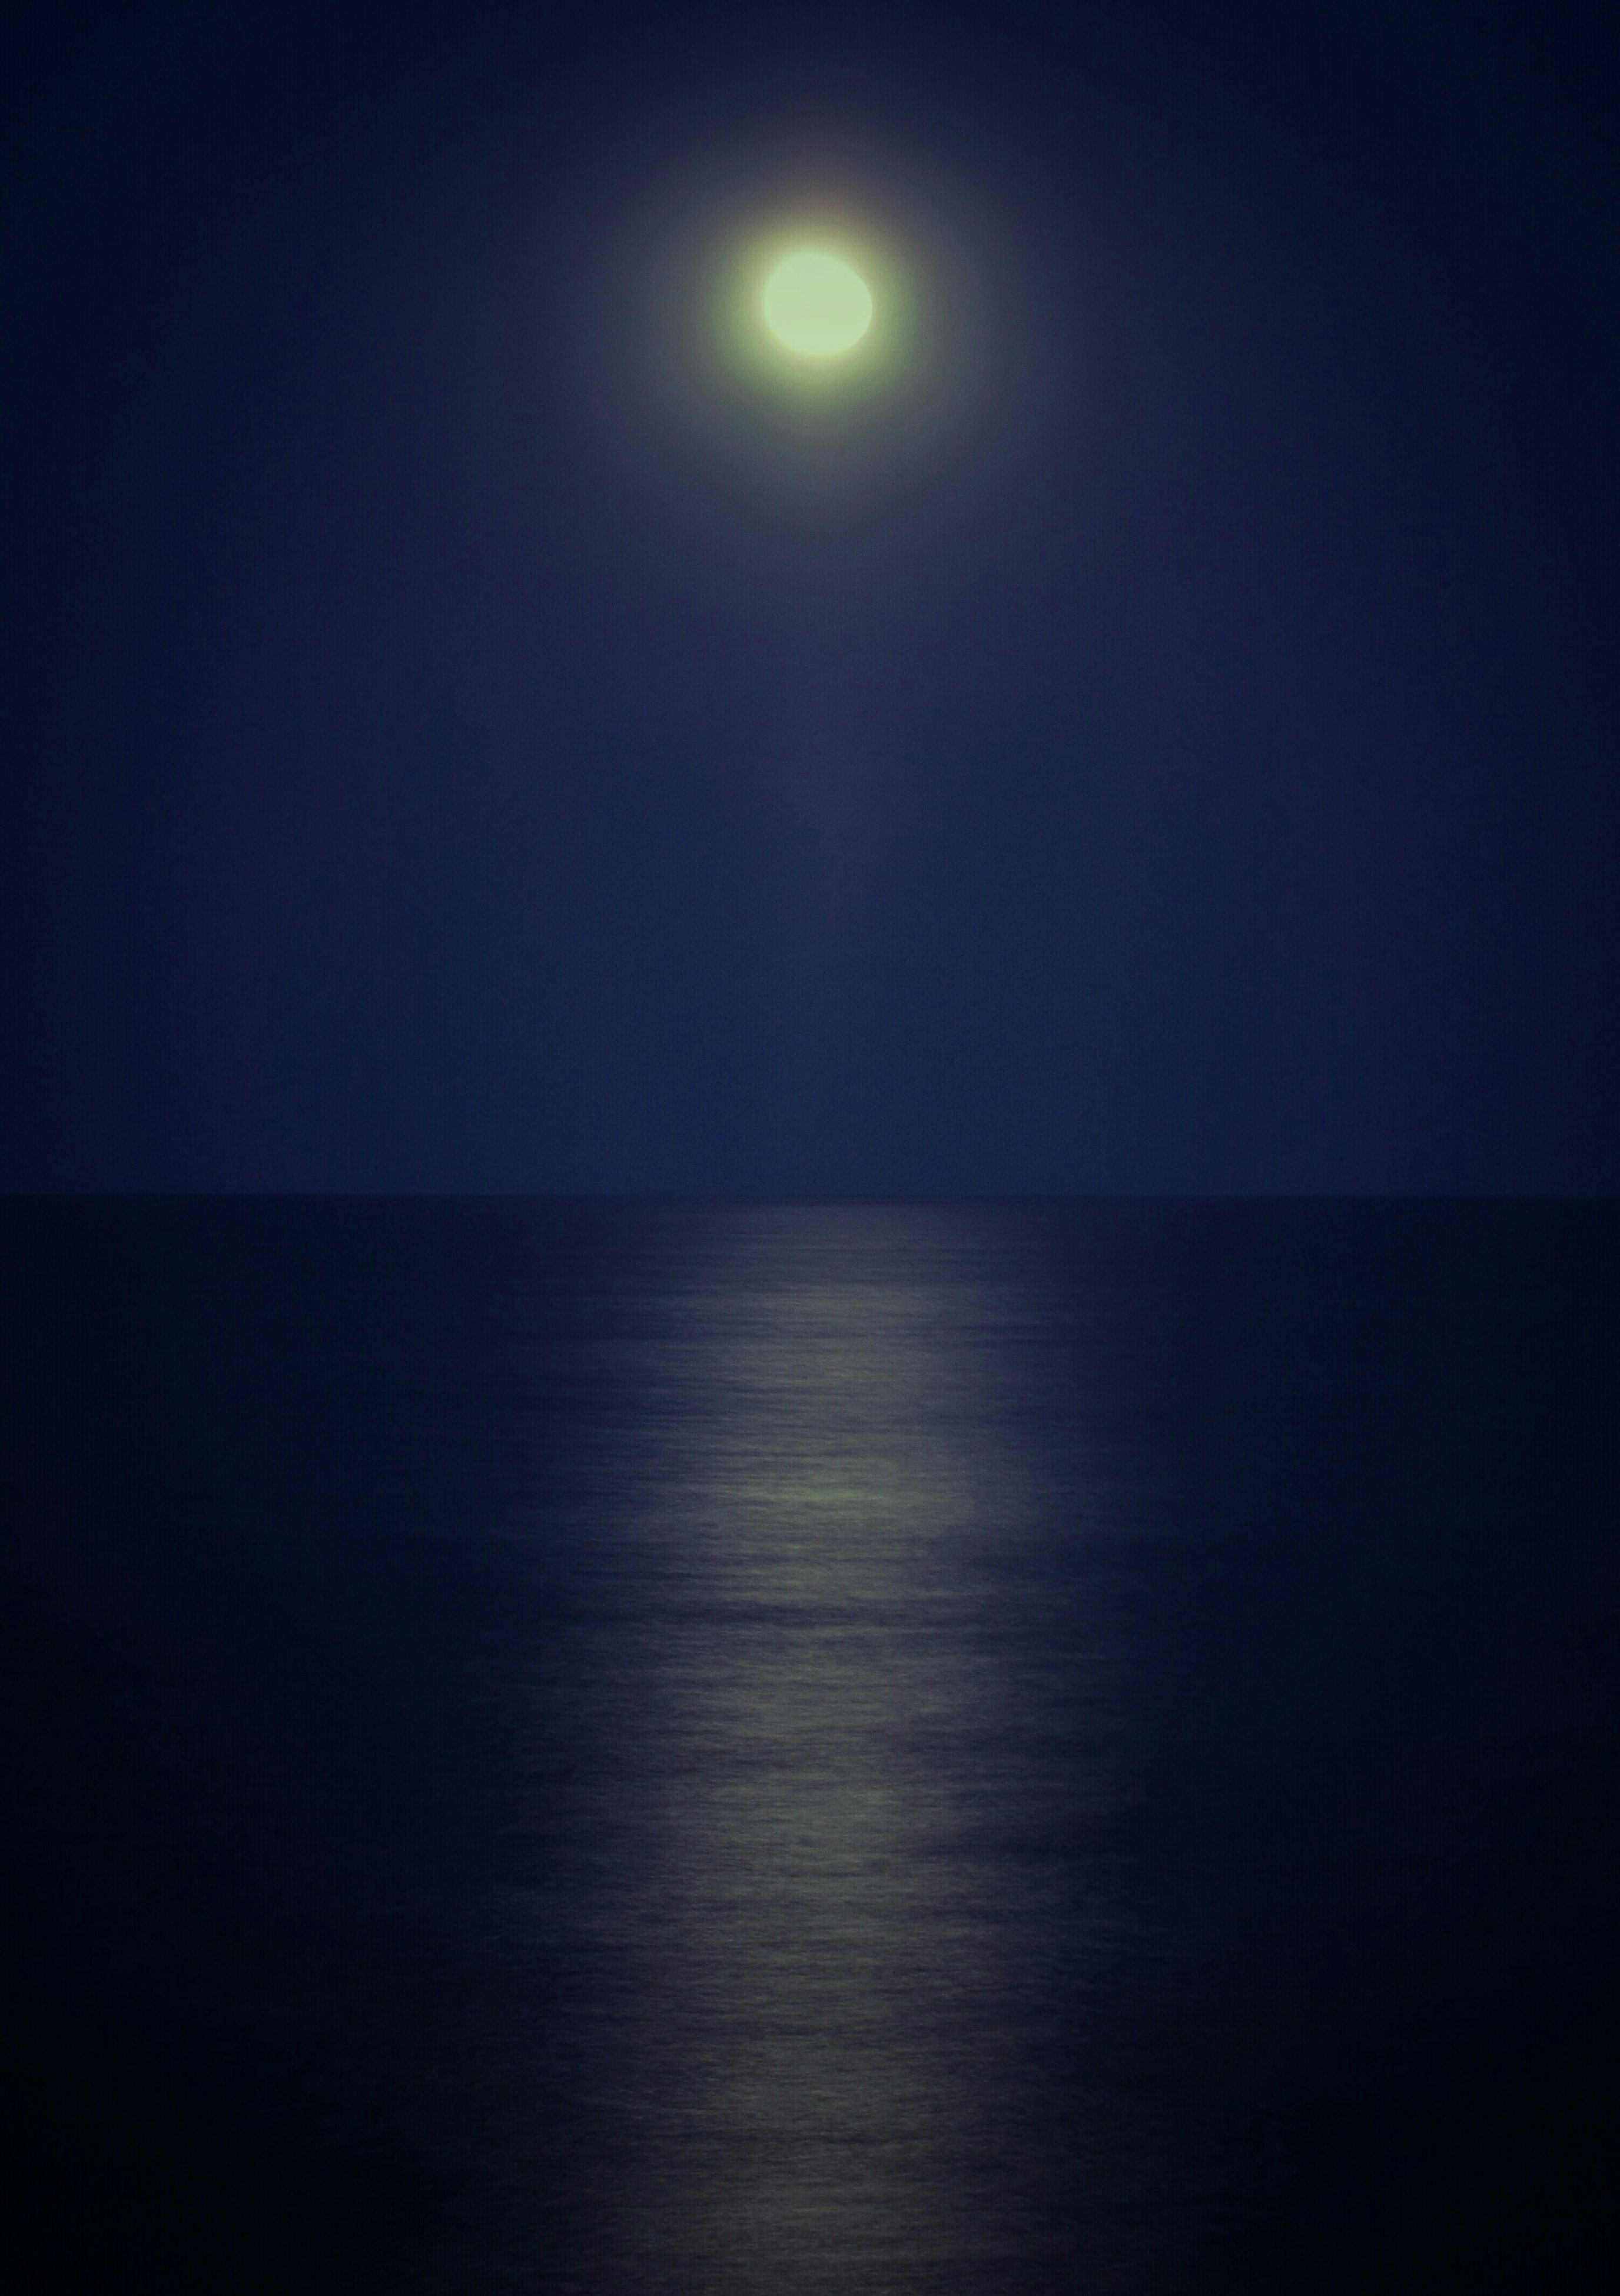 sea, tranquil scene, scenics, tranquility, horizon over water, moon, copy space, beauty in nature, water, night, clear sky, nature, idyllic, sun, sky, waterfront, dark, no people, reflection, outdoors